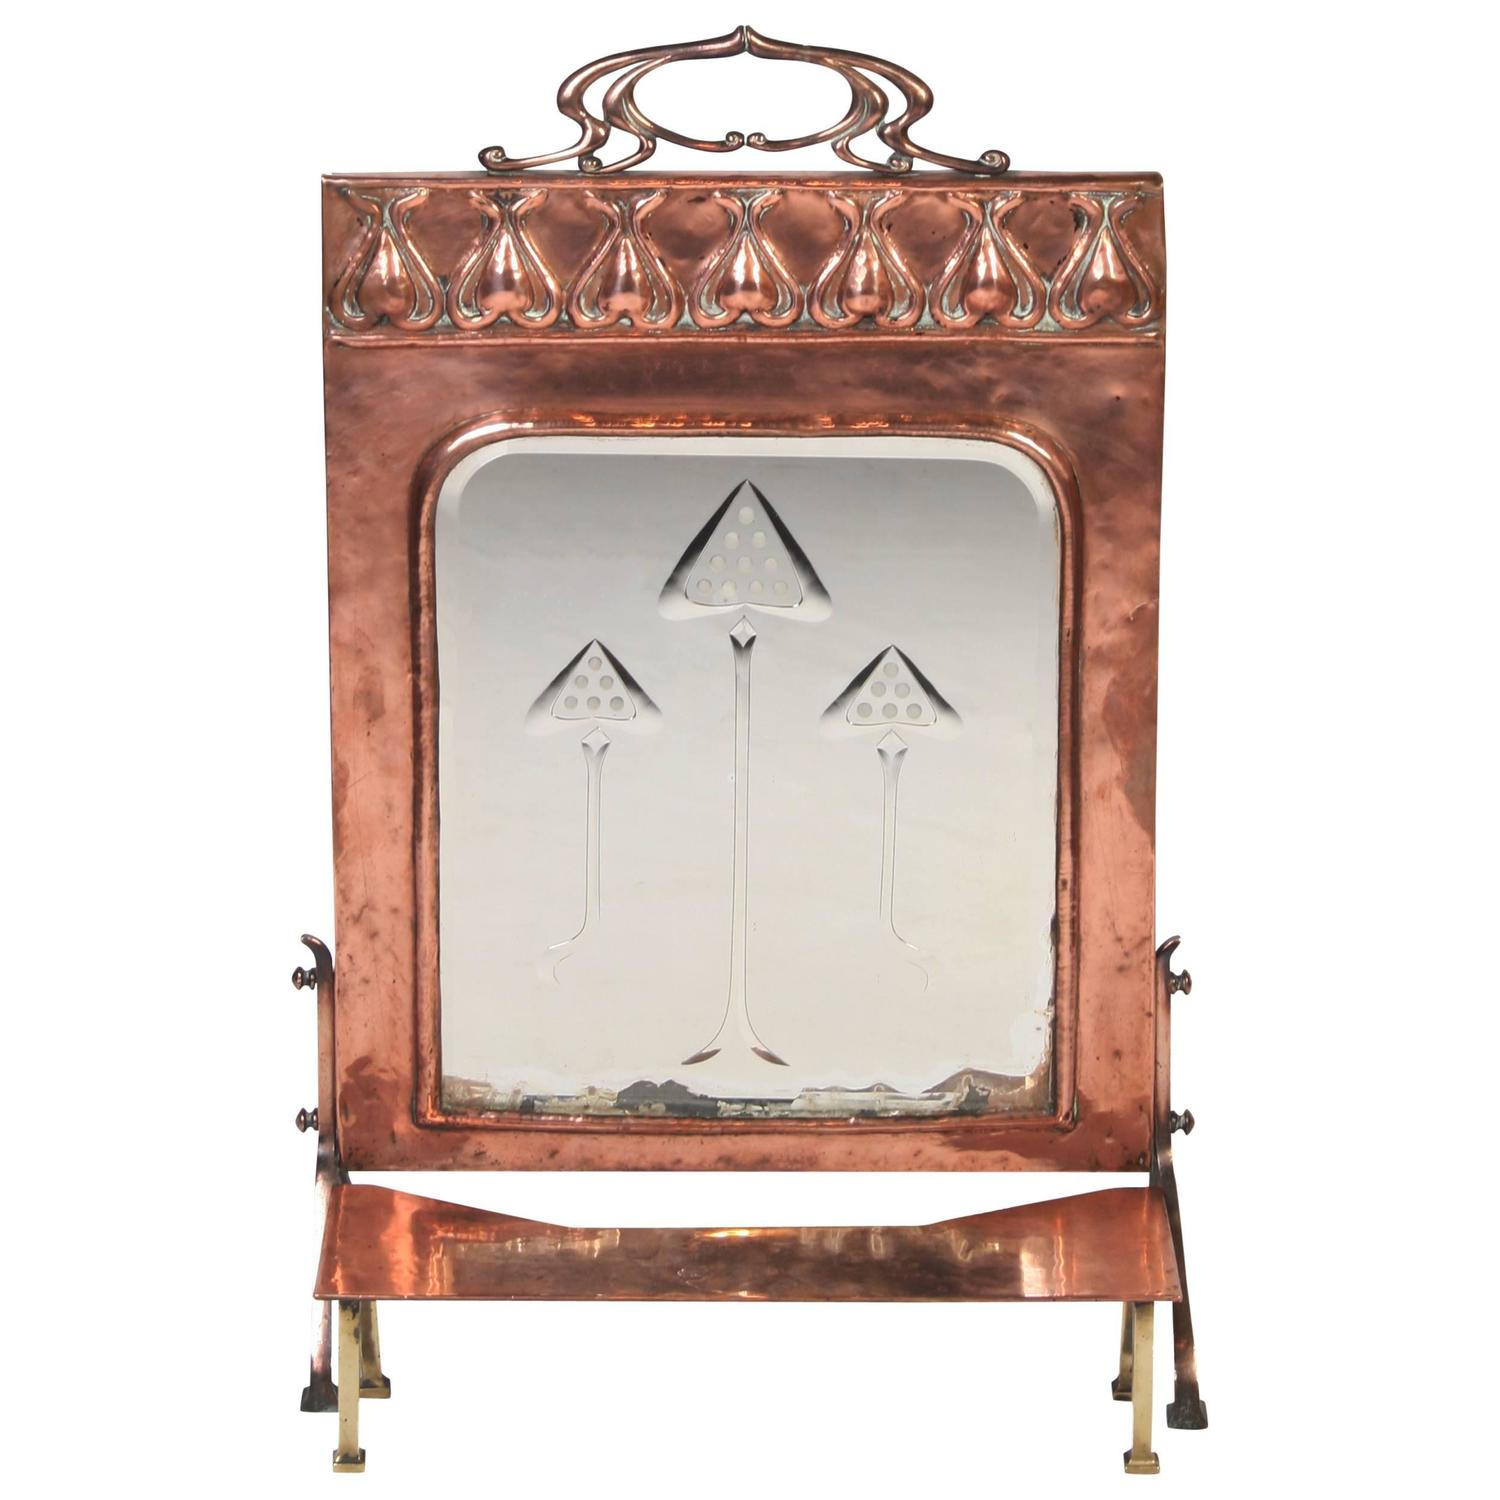 Art Nouveau Period Copper Fire Screen For Sale At 1stdibs